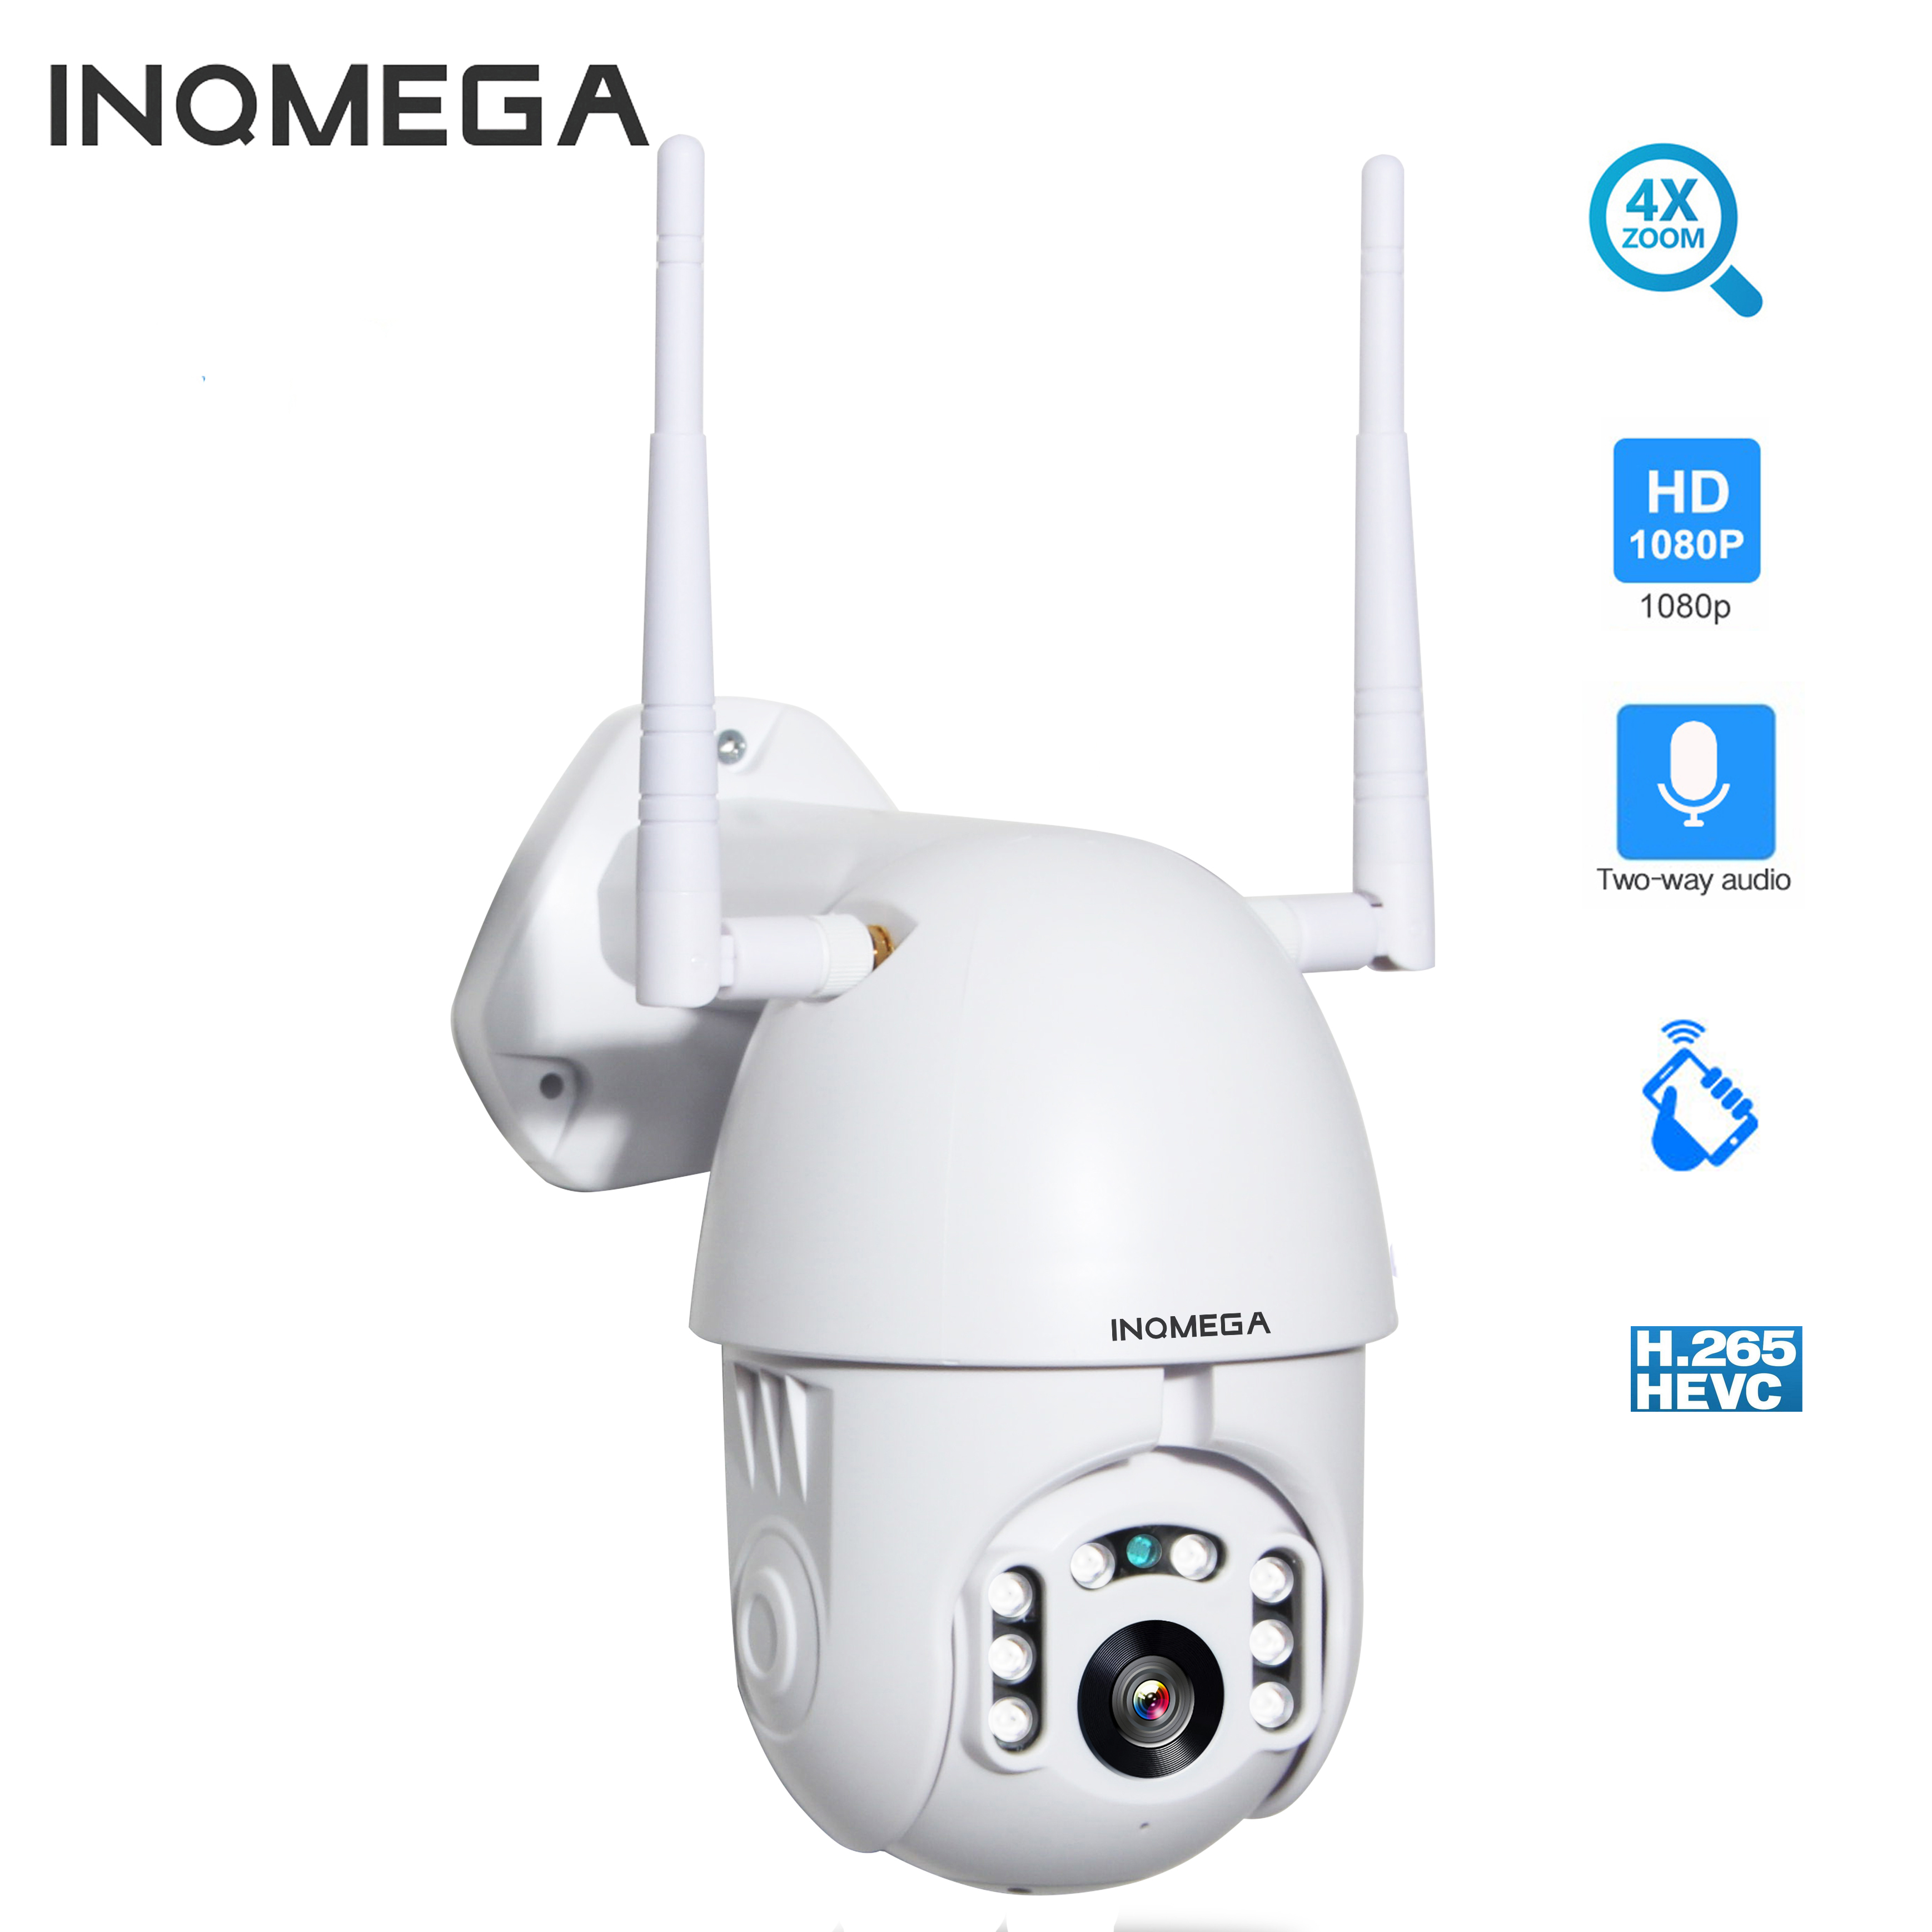 INQMEGA 1080p PTZ IP Camera Outdoor Speed 4X Digital Zoom H.265X Dome CCTV Security Cameras WIFI Exterior IR Home Surveilance|Surveillance Cameras|   - AliExpress